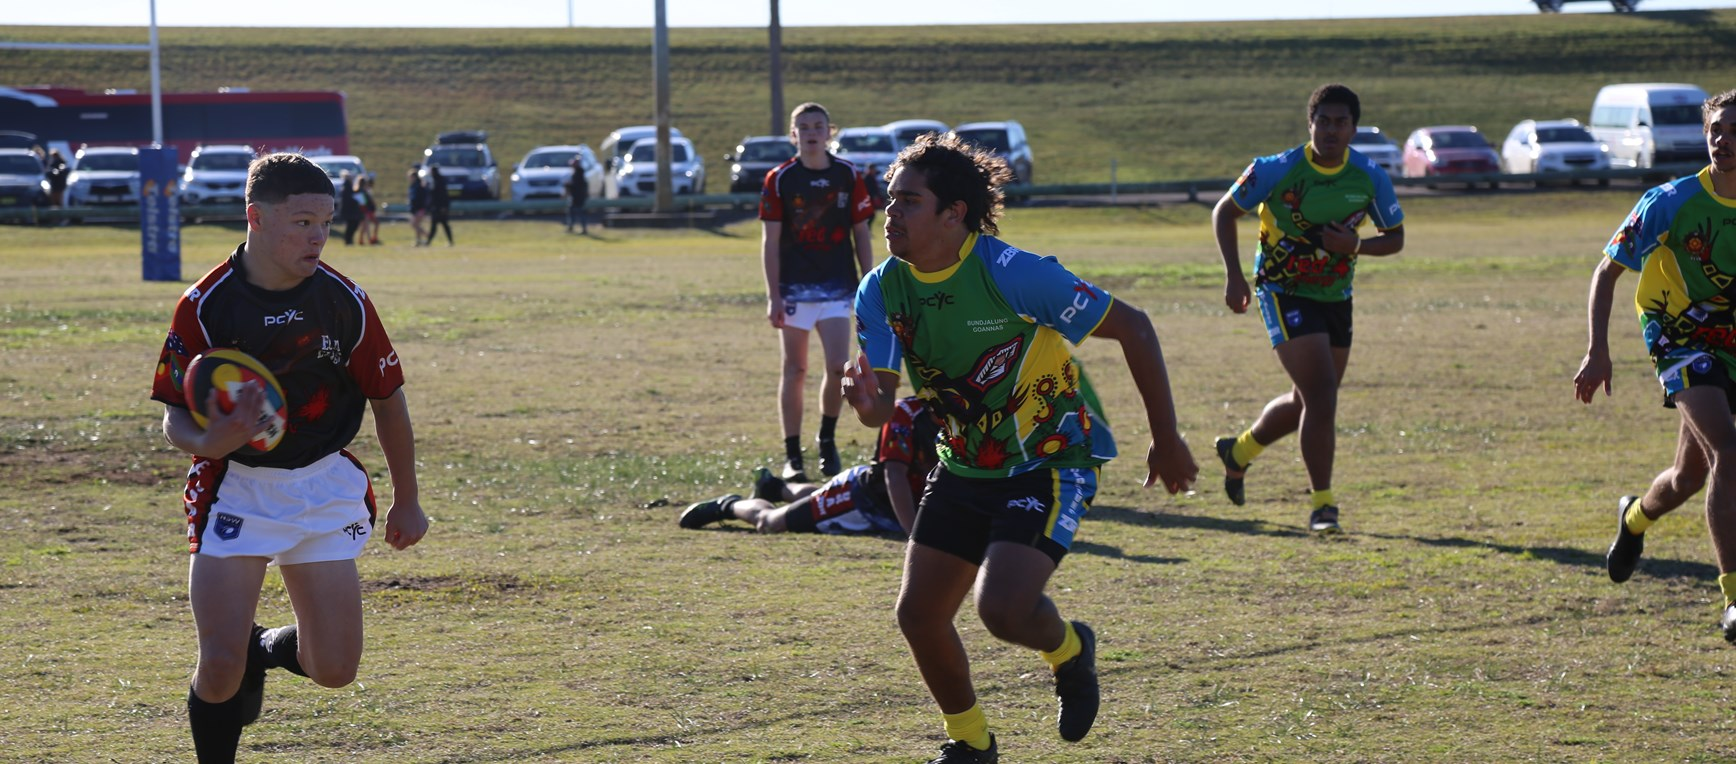 GALLERY | 2019 PCYC Nations of Origin